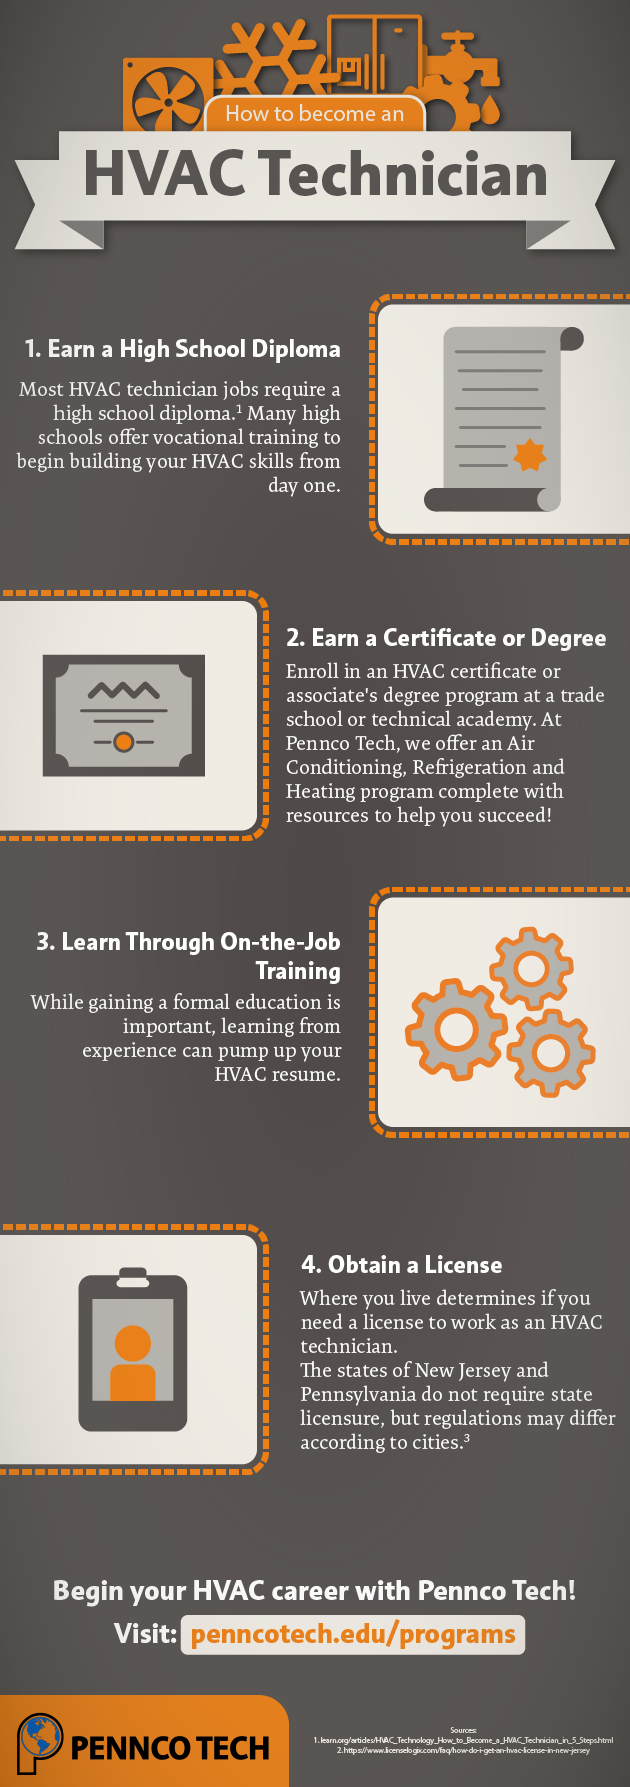 Become An Hvac Technician With The Proper Training And Certification